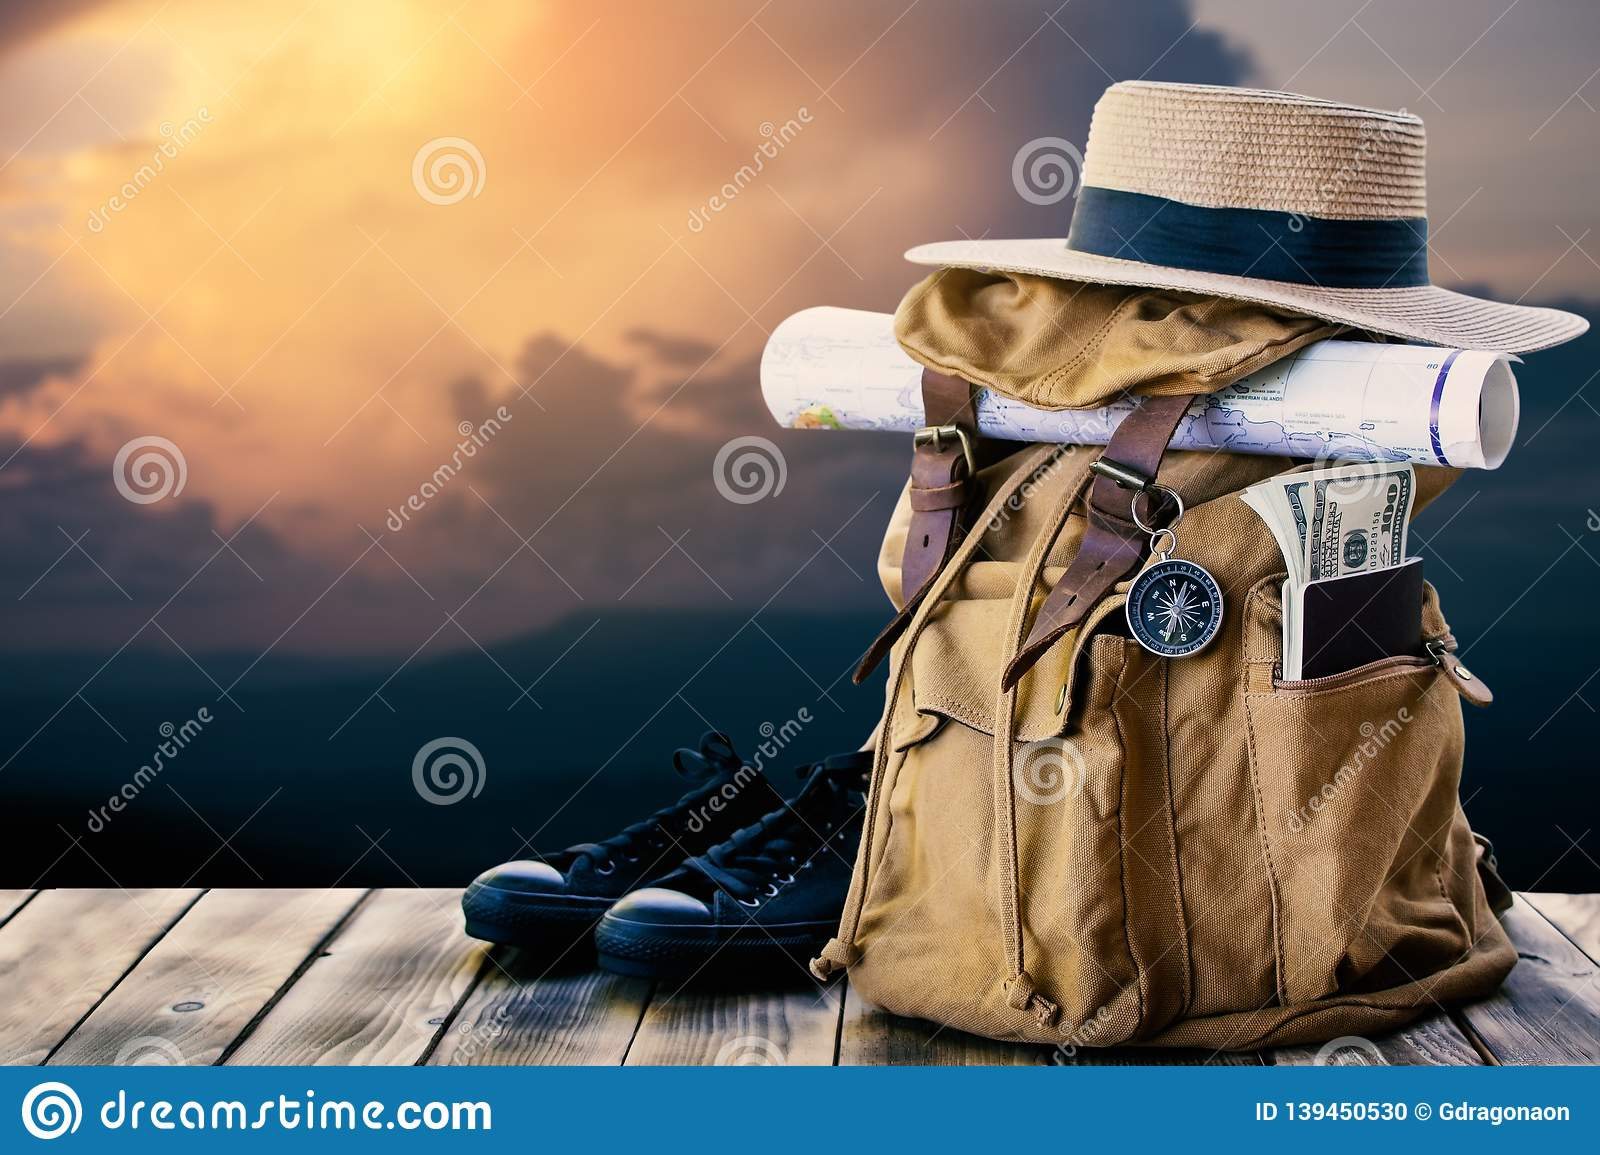 Yellow bag for backpack and nature background